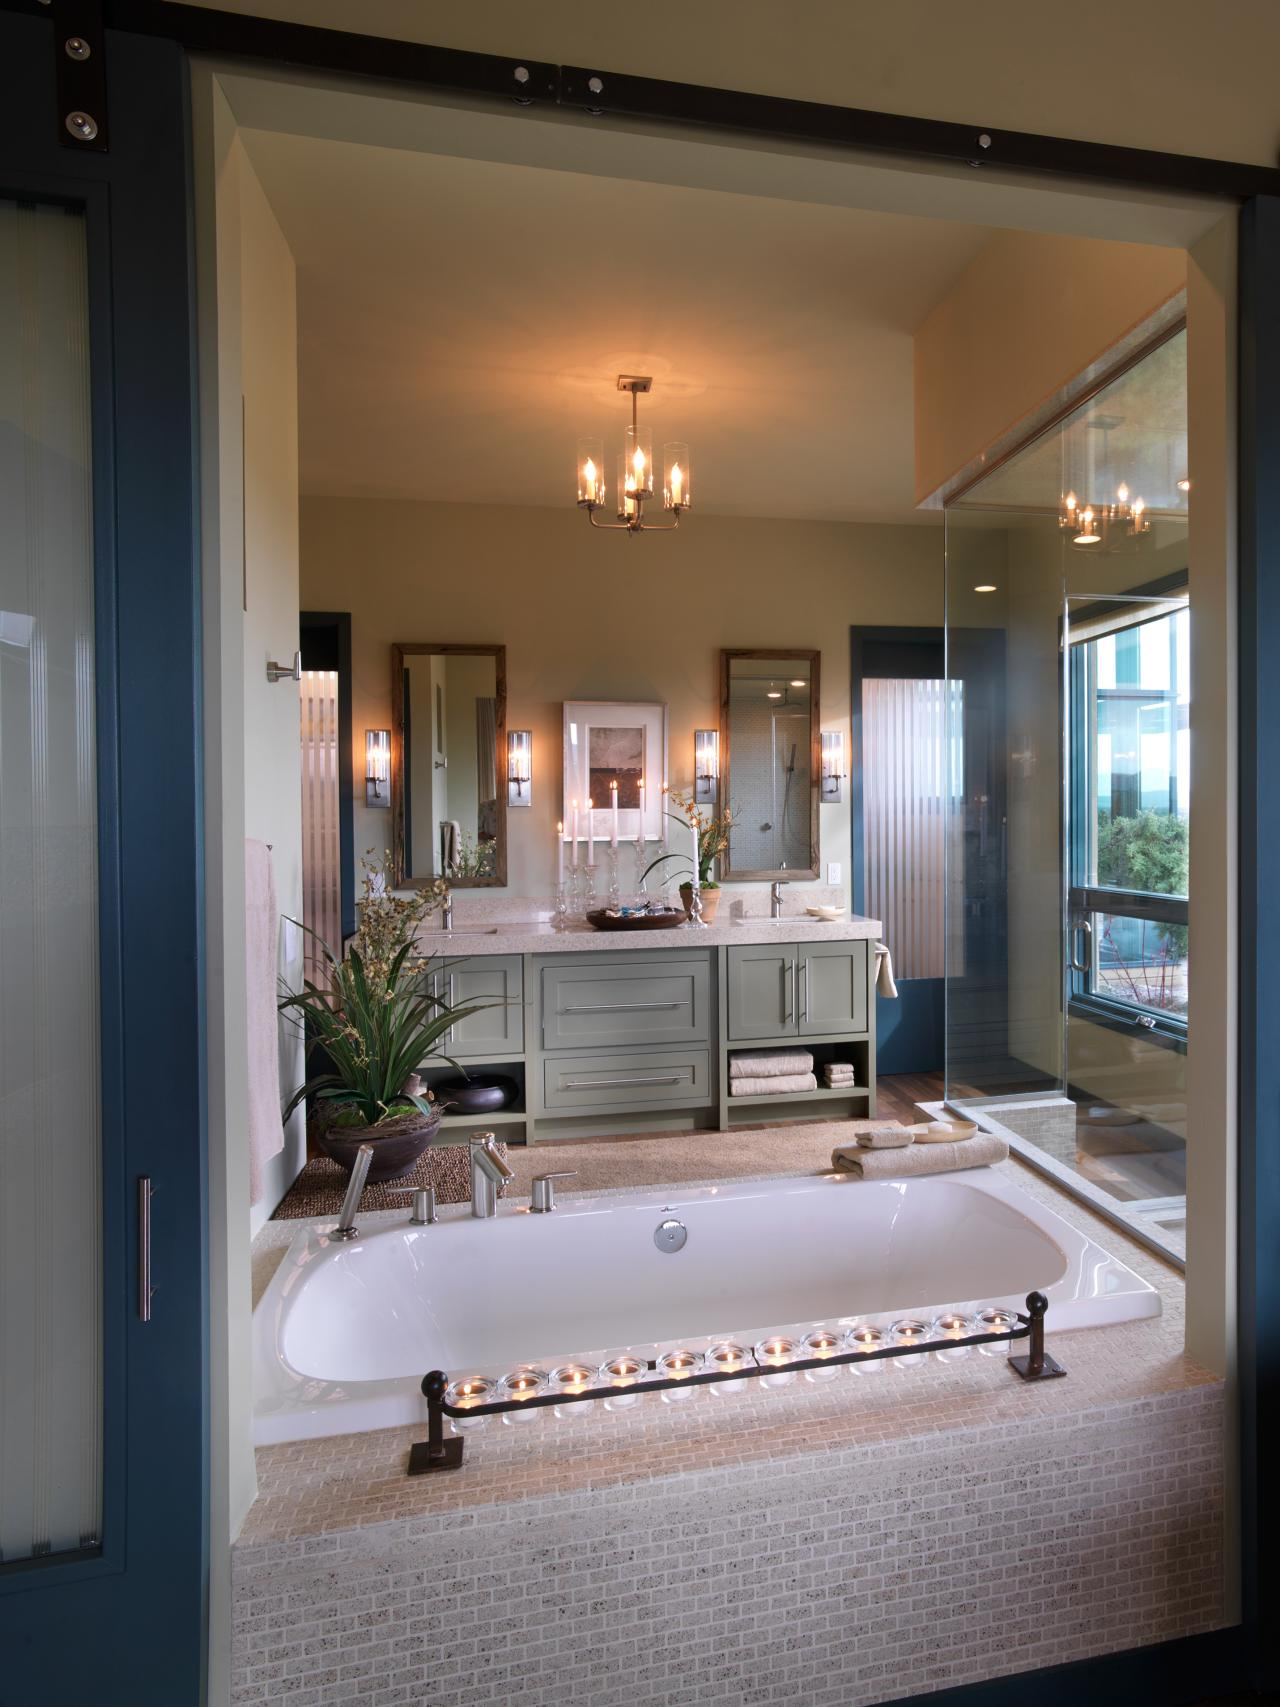 Photos hgtv for Bathroom designs hgtv